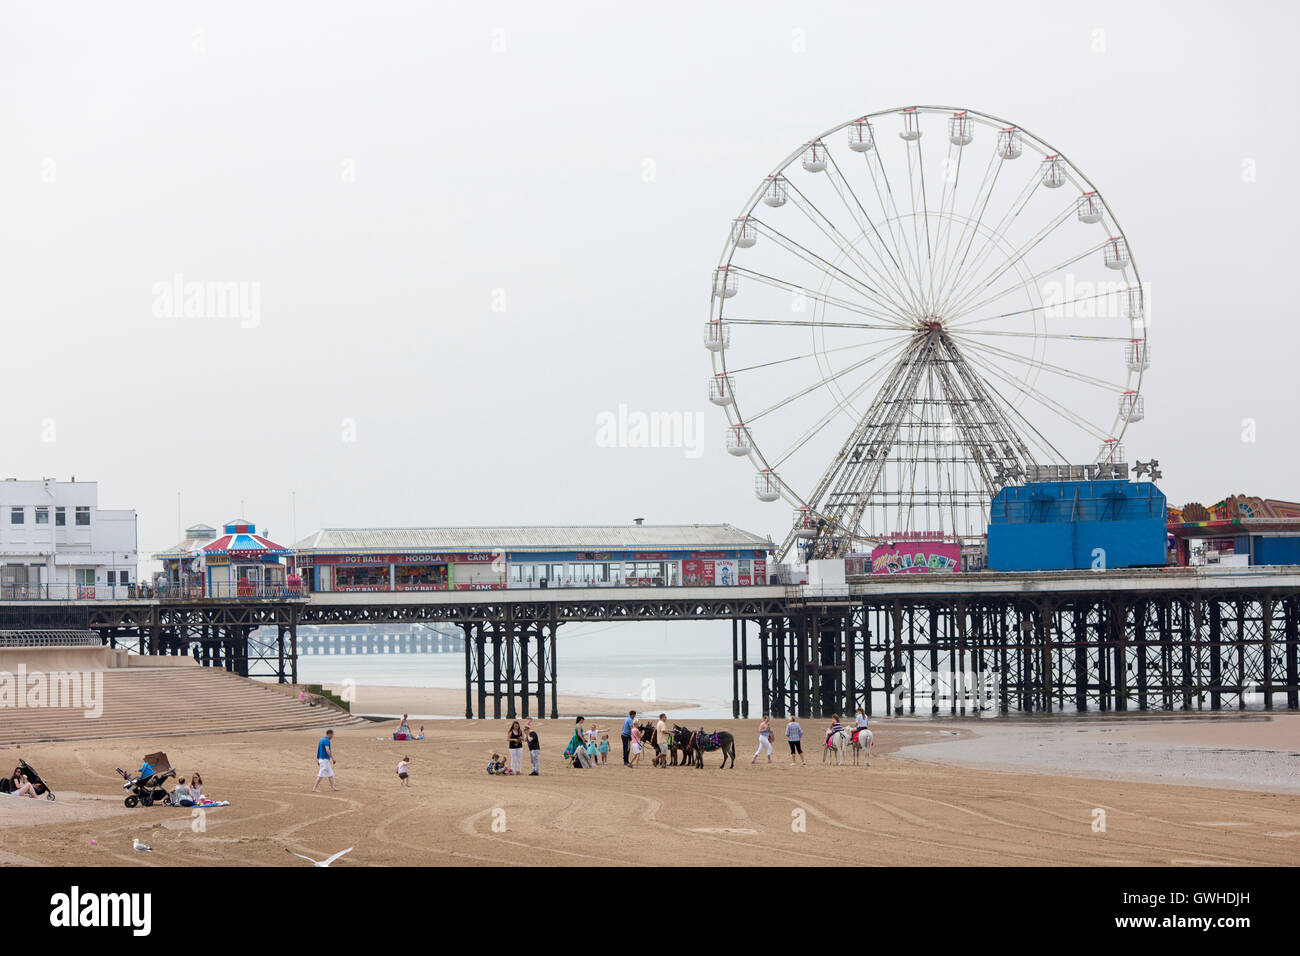 Warm weather at Blackpool , England , today (Tuesday 7th June 2016) A view of the beach and central pier - Stock Image